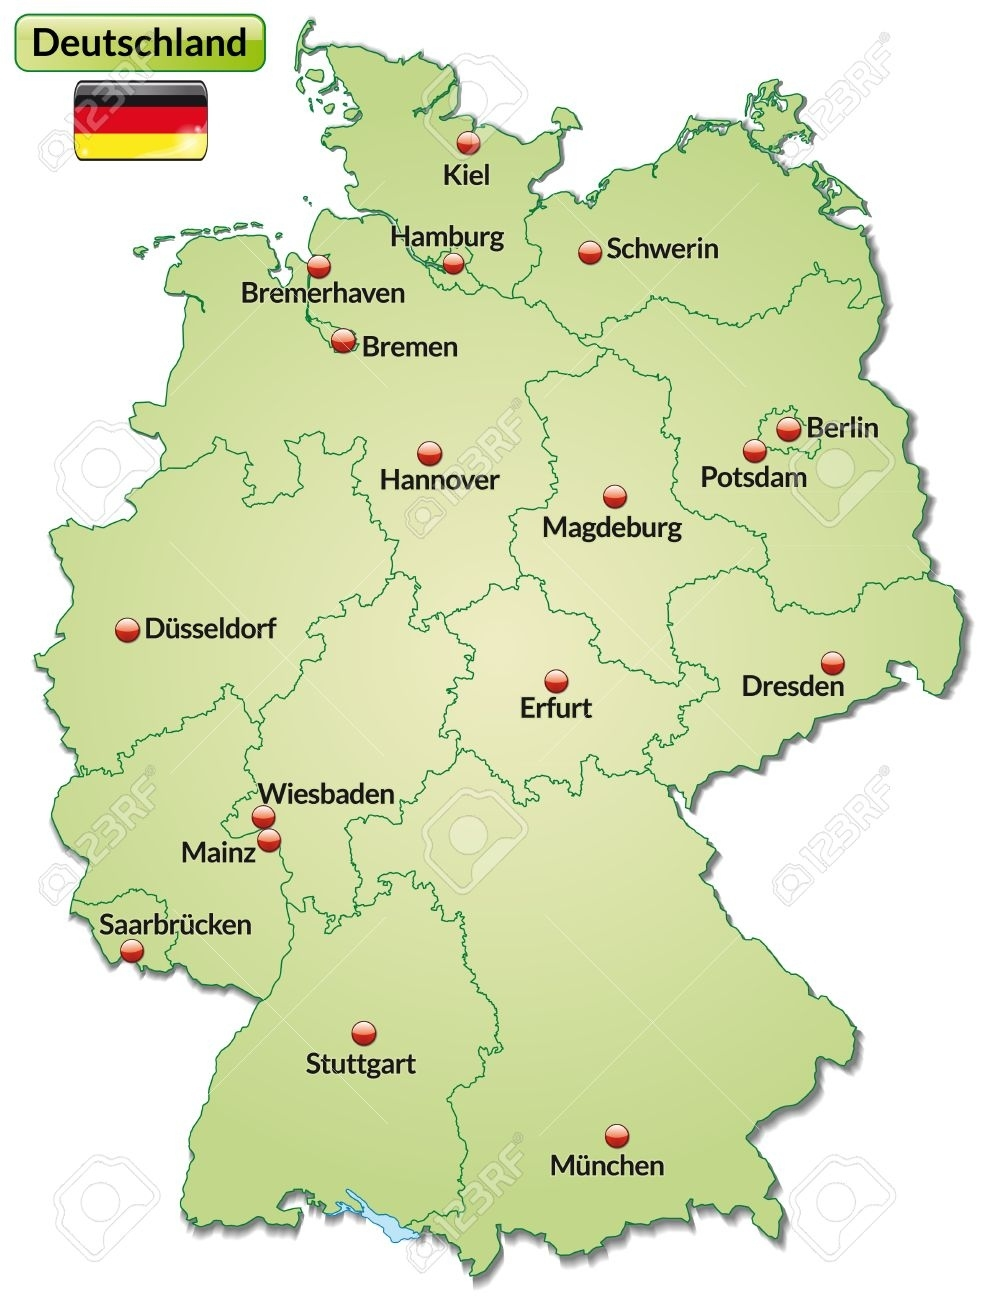 Map Of Germany With Main Cities In Pastel Green for Map Of Germany With Major Cities